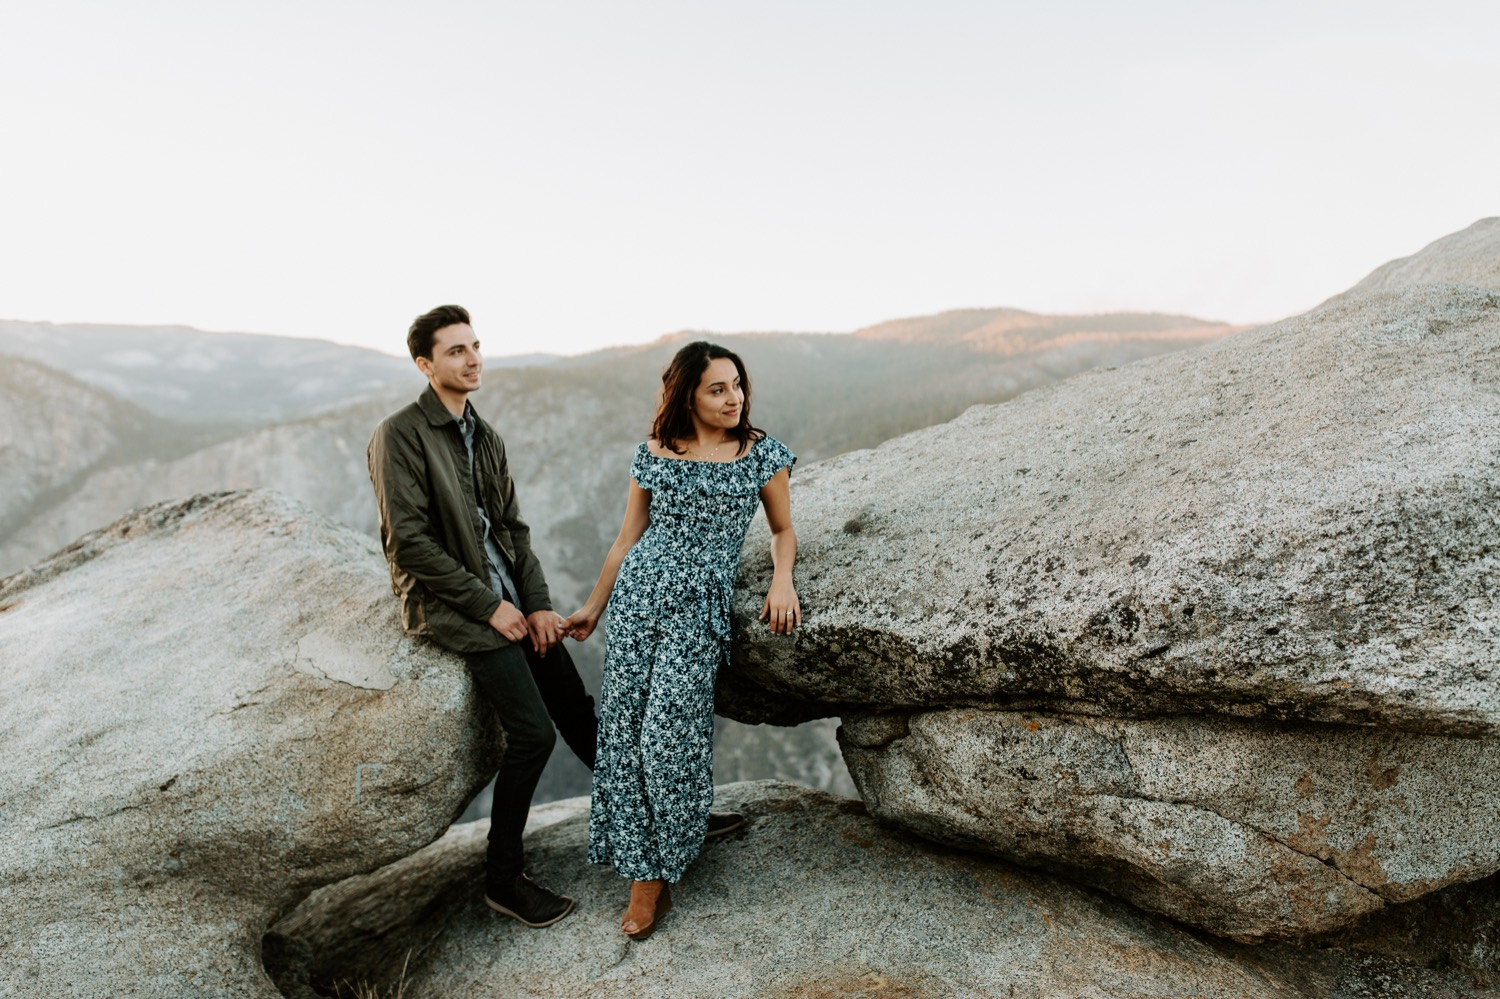 27_Yosemite-National-Park-Engagement-Session-Emily-Magers-Photography66.jpg